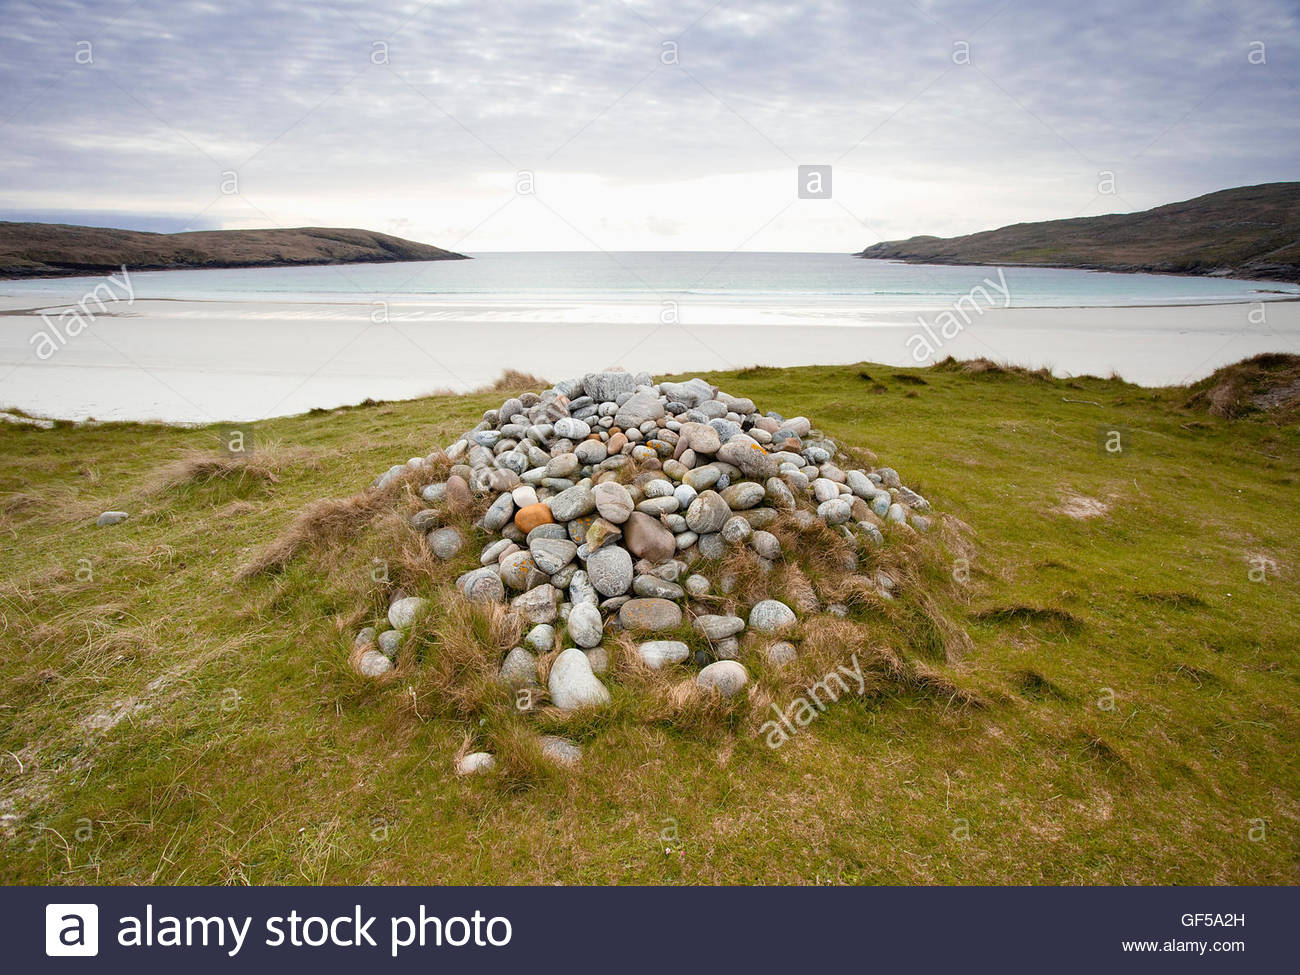 The Annie Jane Cairn above West Bay on the Island of Vatersay, Outer Hebrides, Scotland. Stock Photo